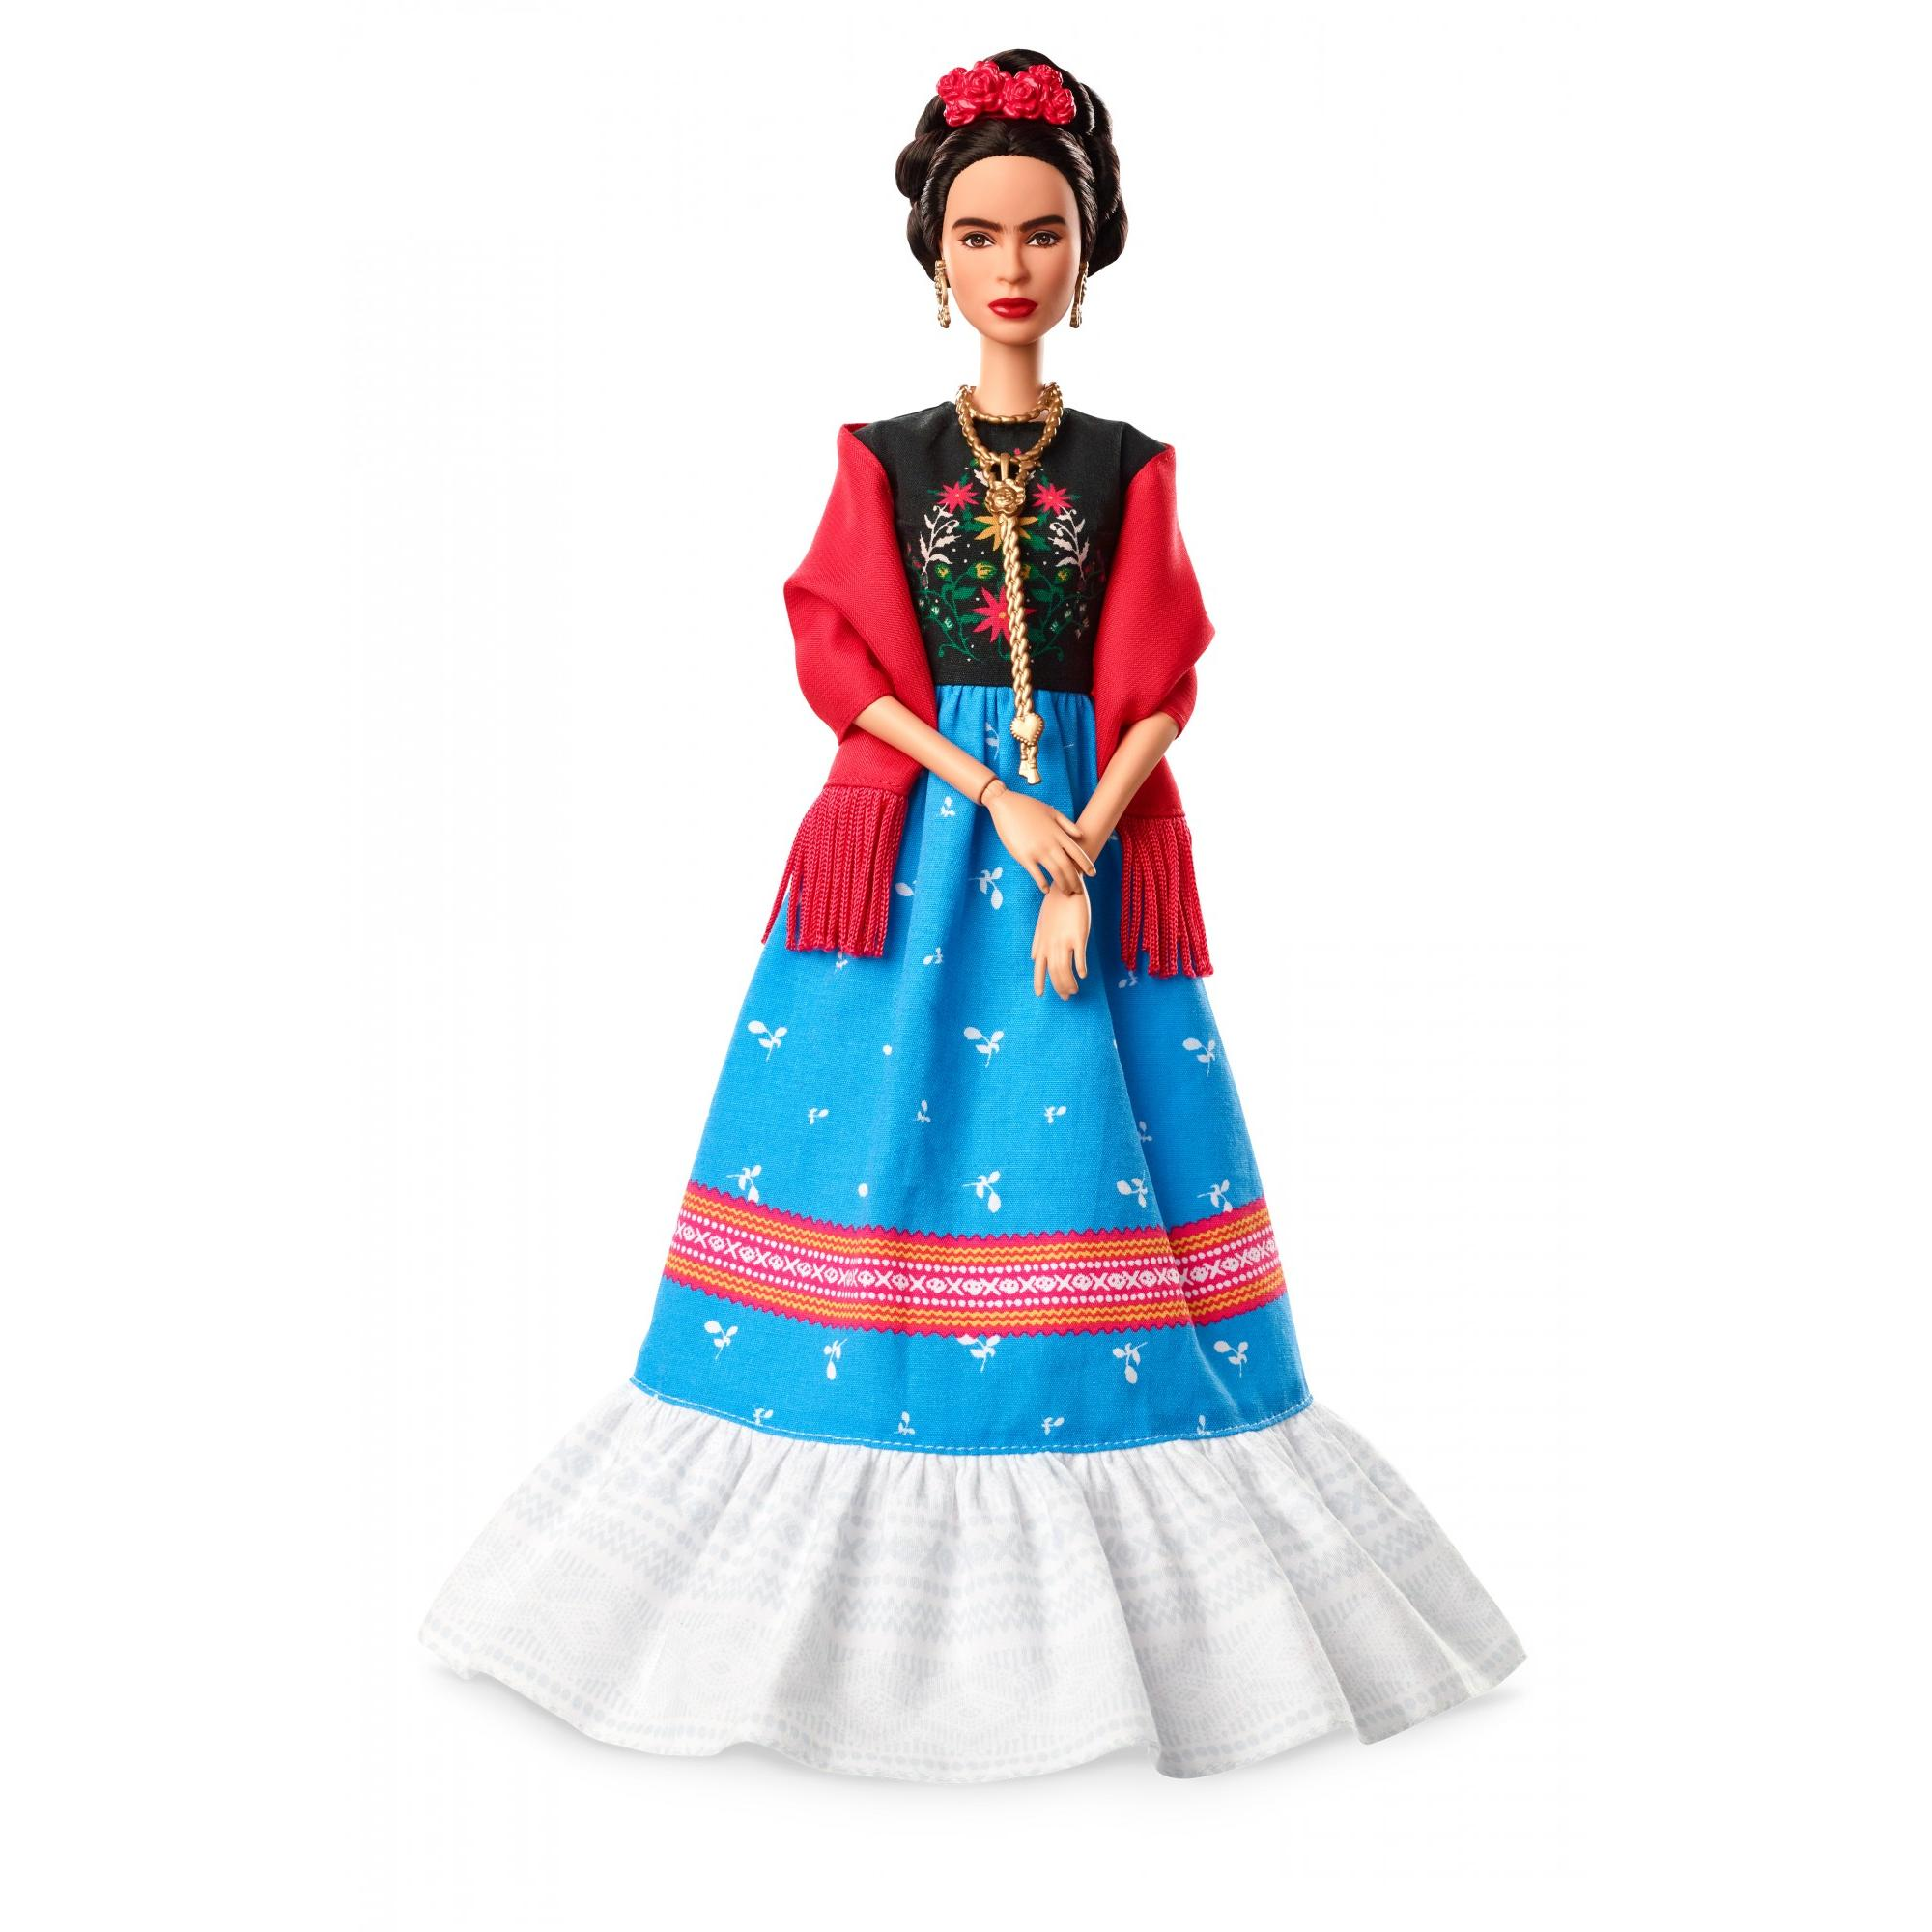 Barbie Inspiring Women Series Frida Kahlo Doll by Mattel